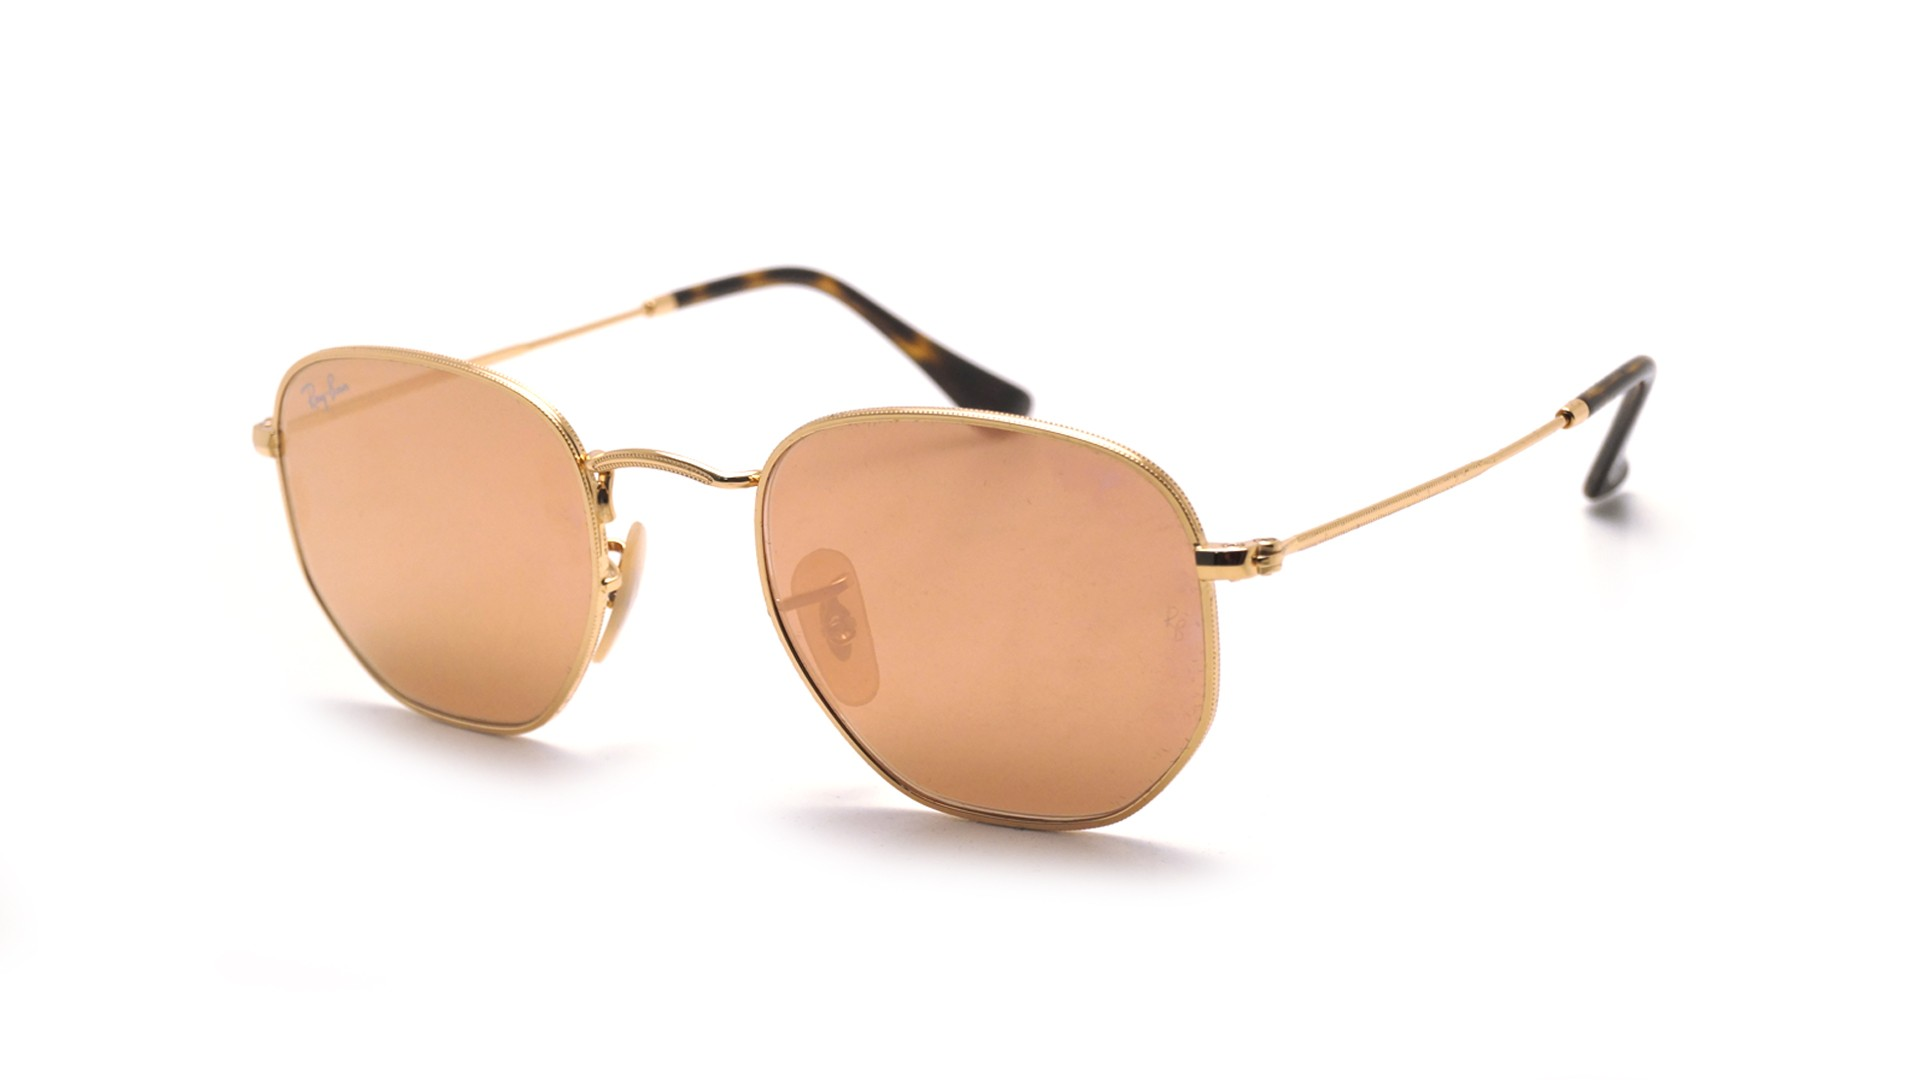 Sunglasses Ray-Ban Hexagonal flat lenses Gold RB3548N 001 Z2 48-21 Small  Mirror 04649f9f47a2